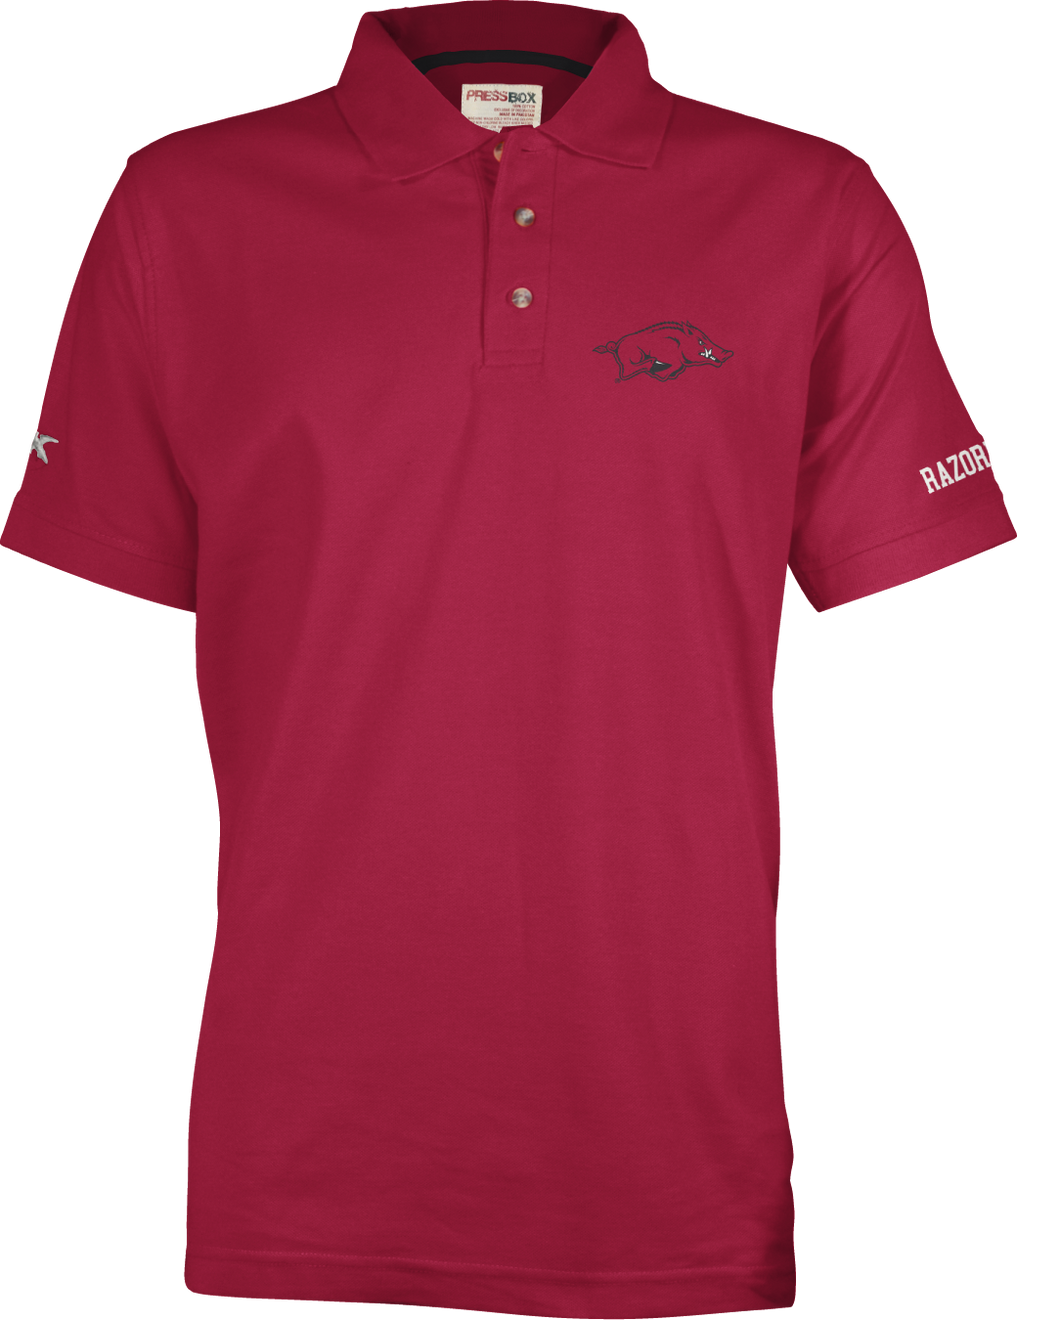 S/S Northfork Solid Polo - Cardinal Red